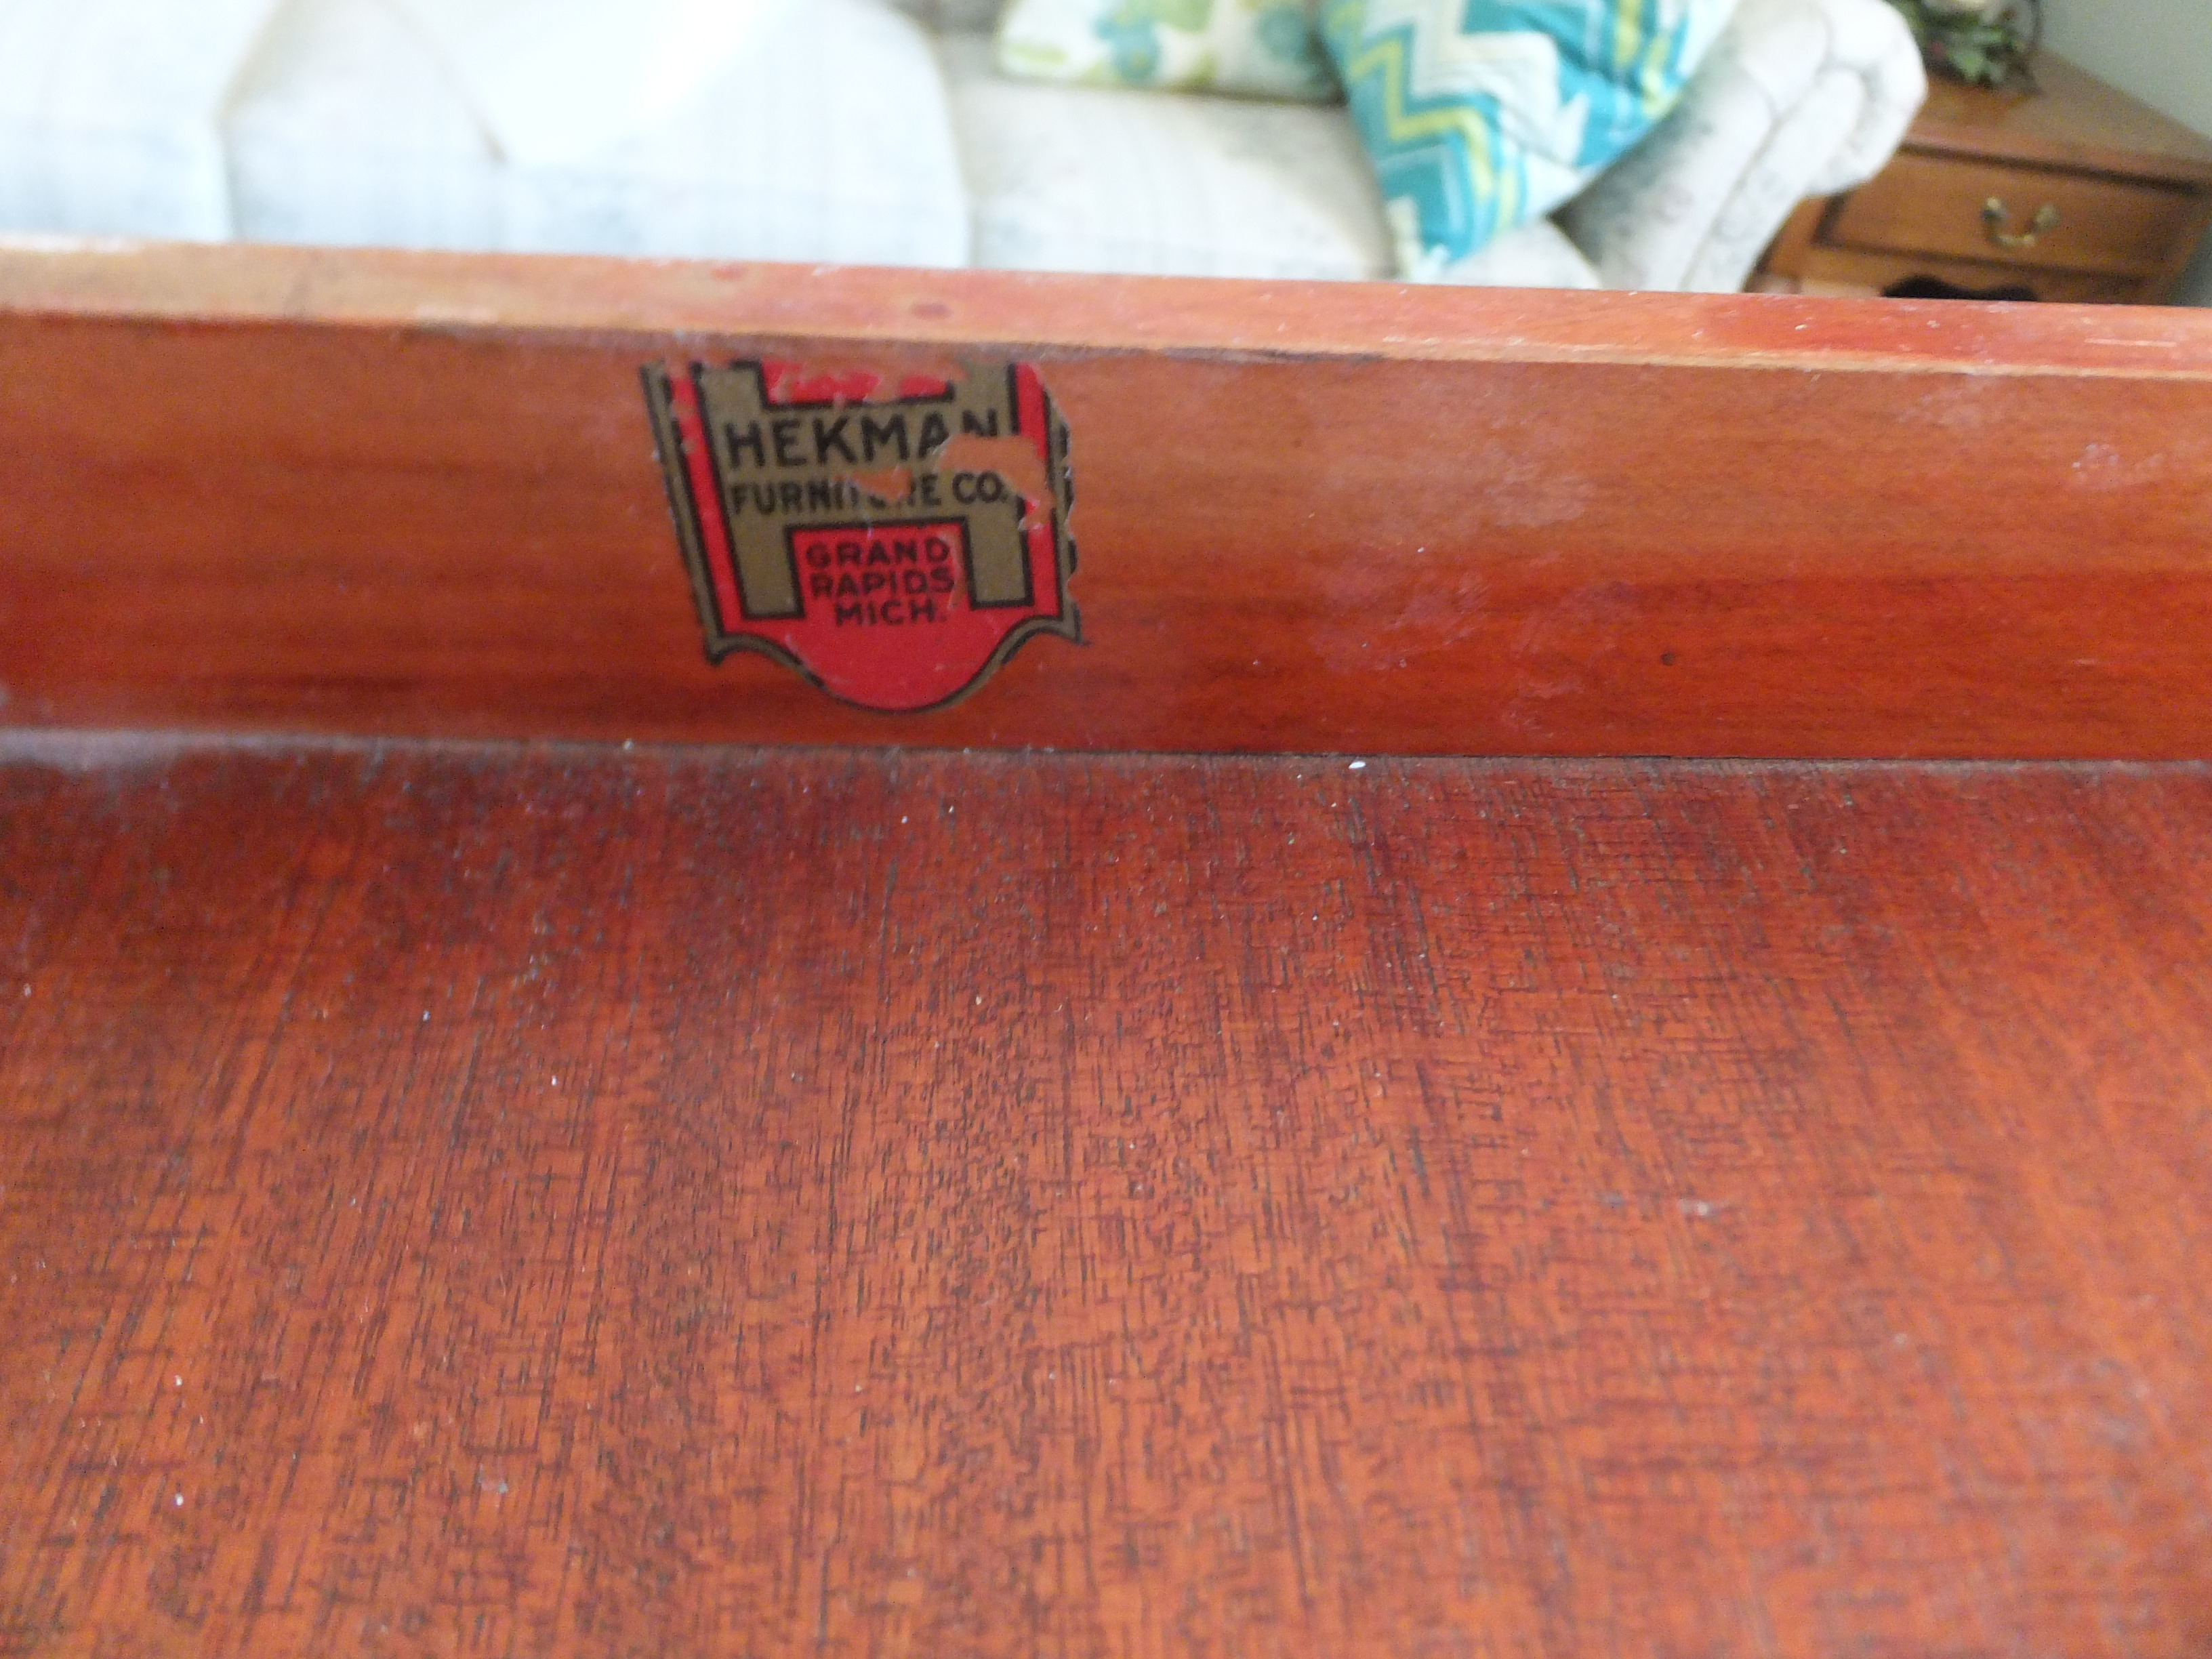 Antique Desk Made By Hekman Furniture Company, Grand Rapids Mich